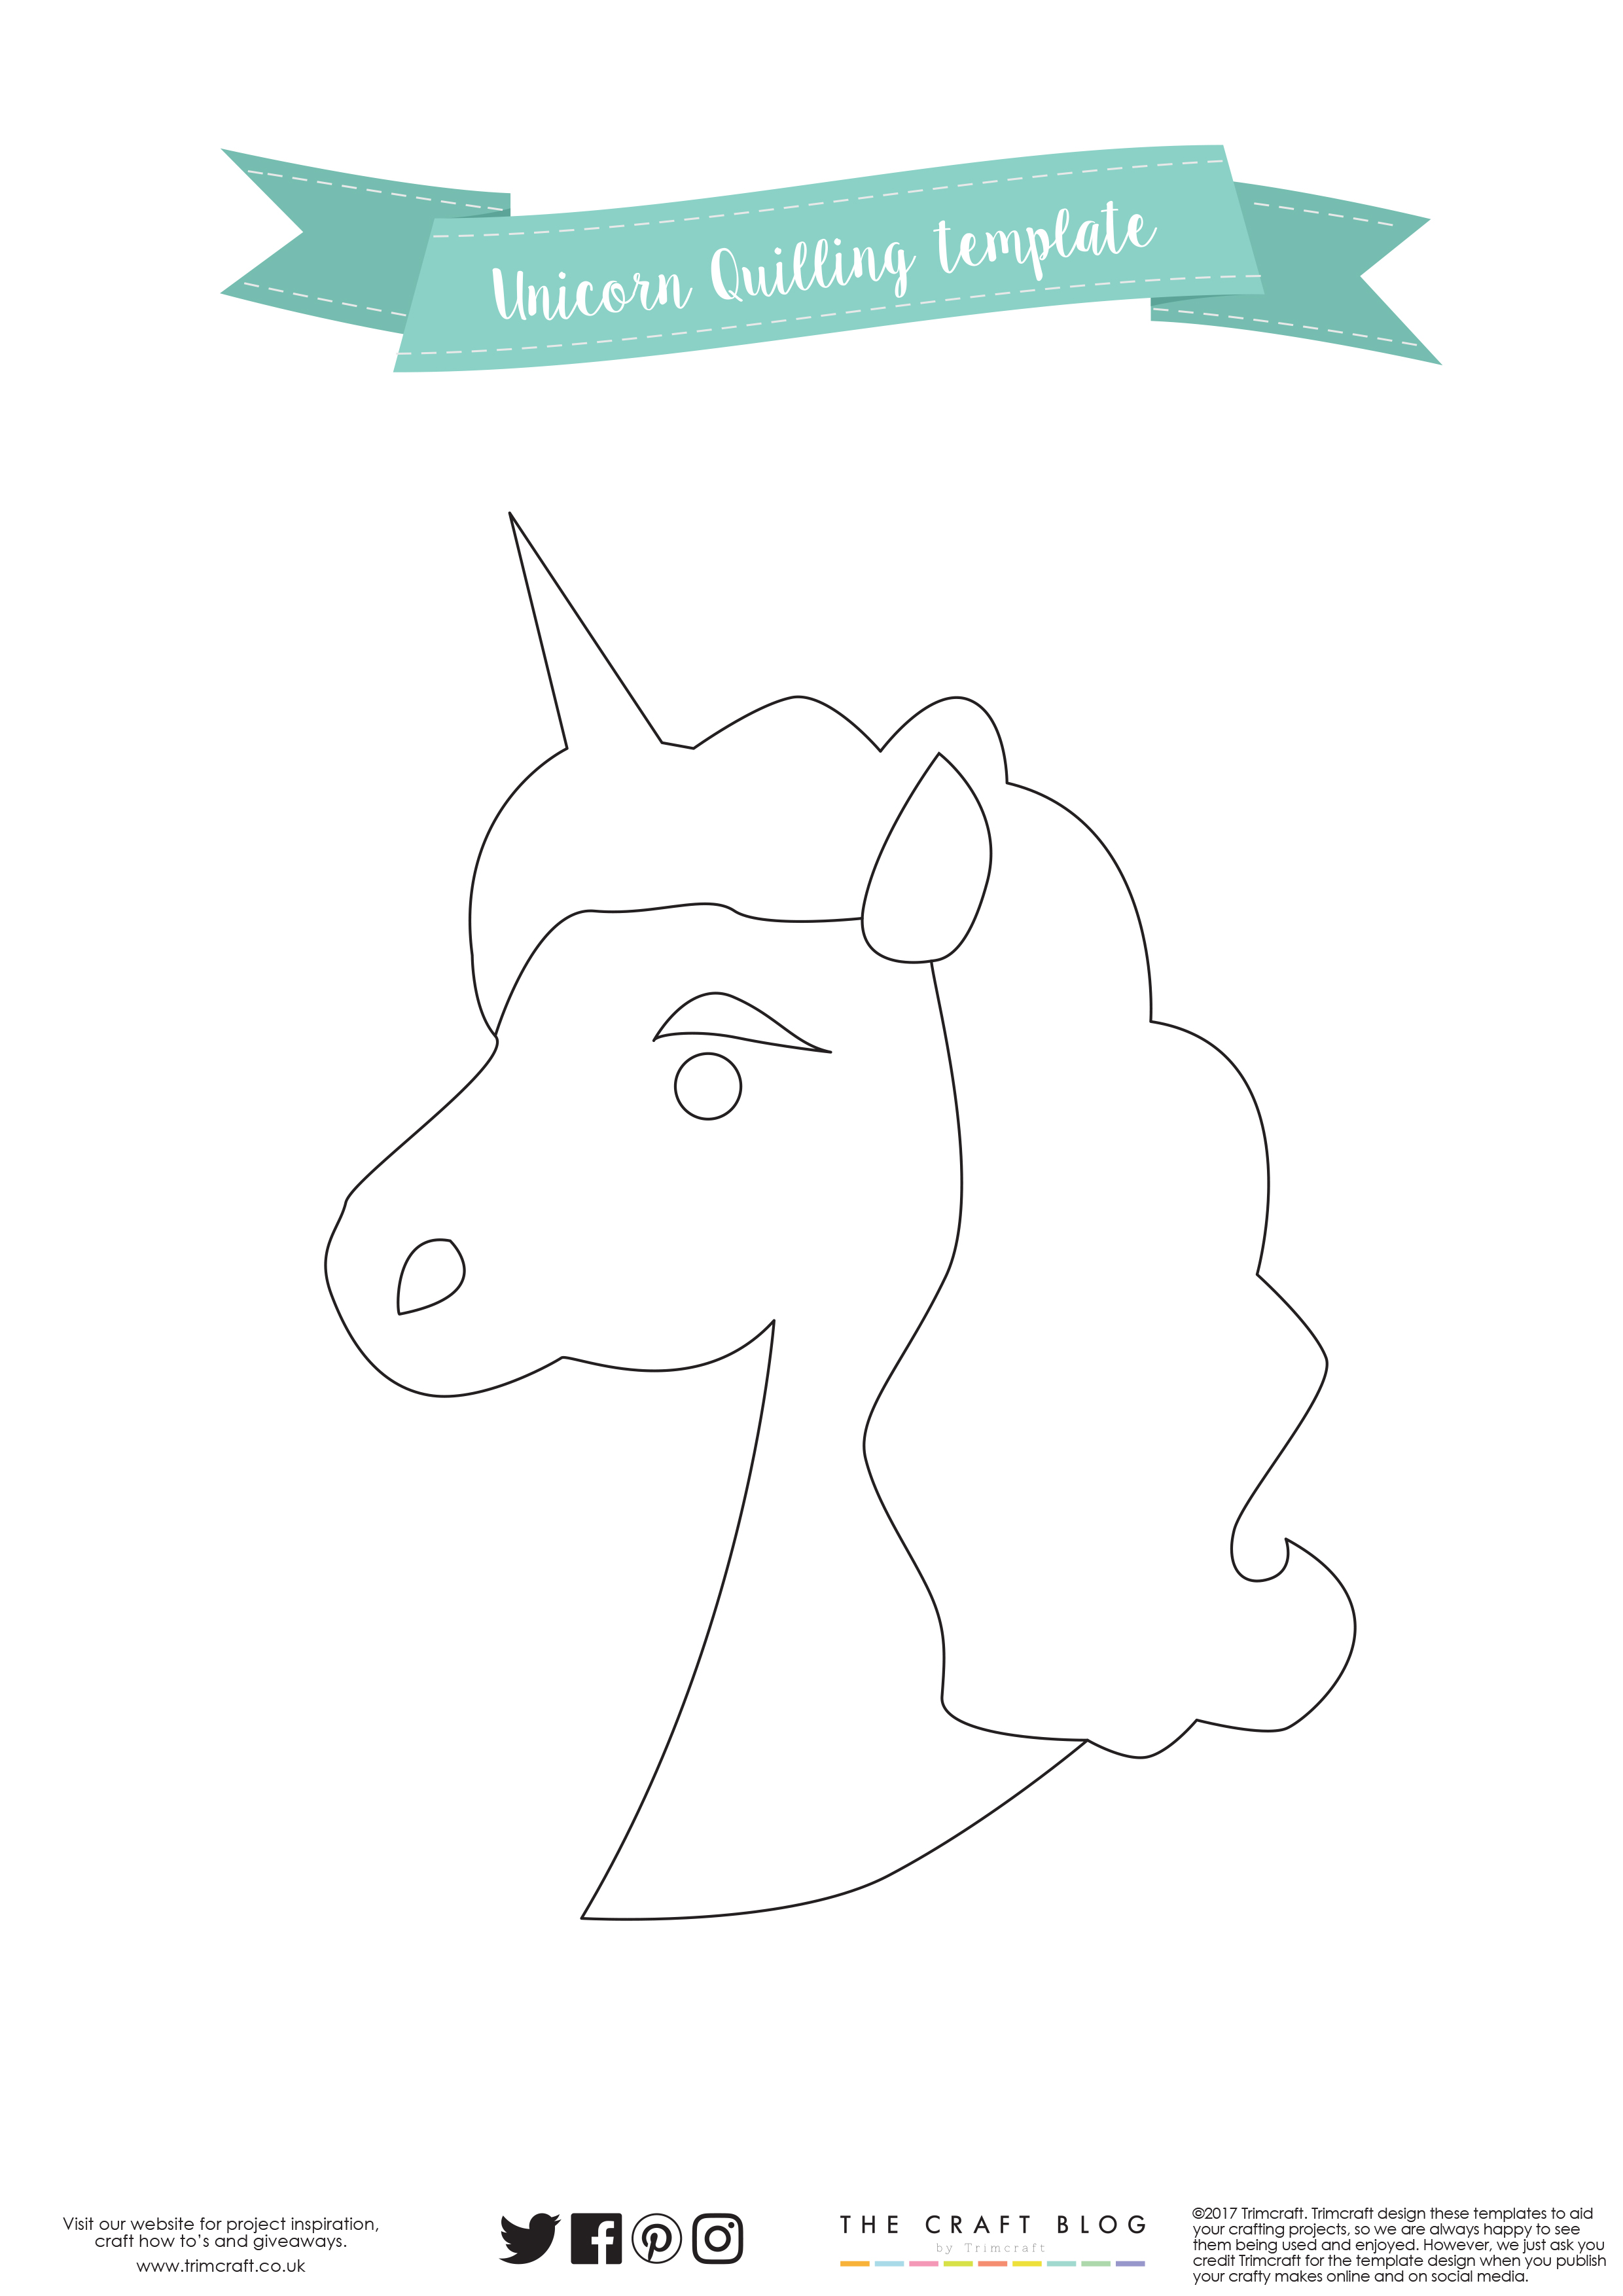 Free printable craft templates the craft blog unicorn quilling home decor template pronofoot35fo Choice Image